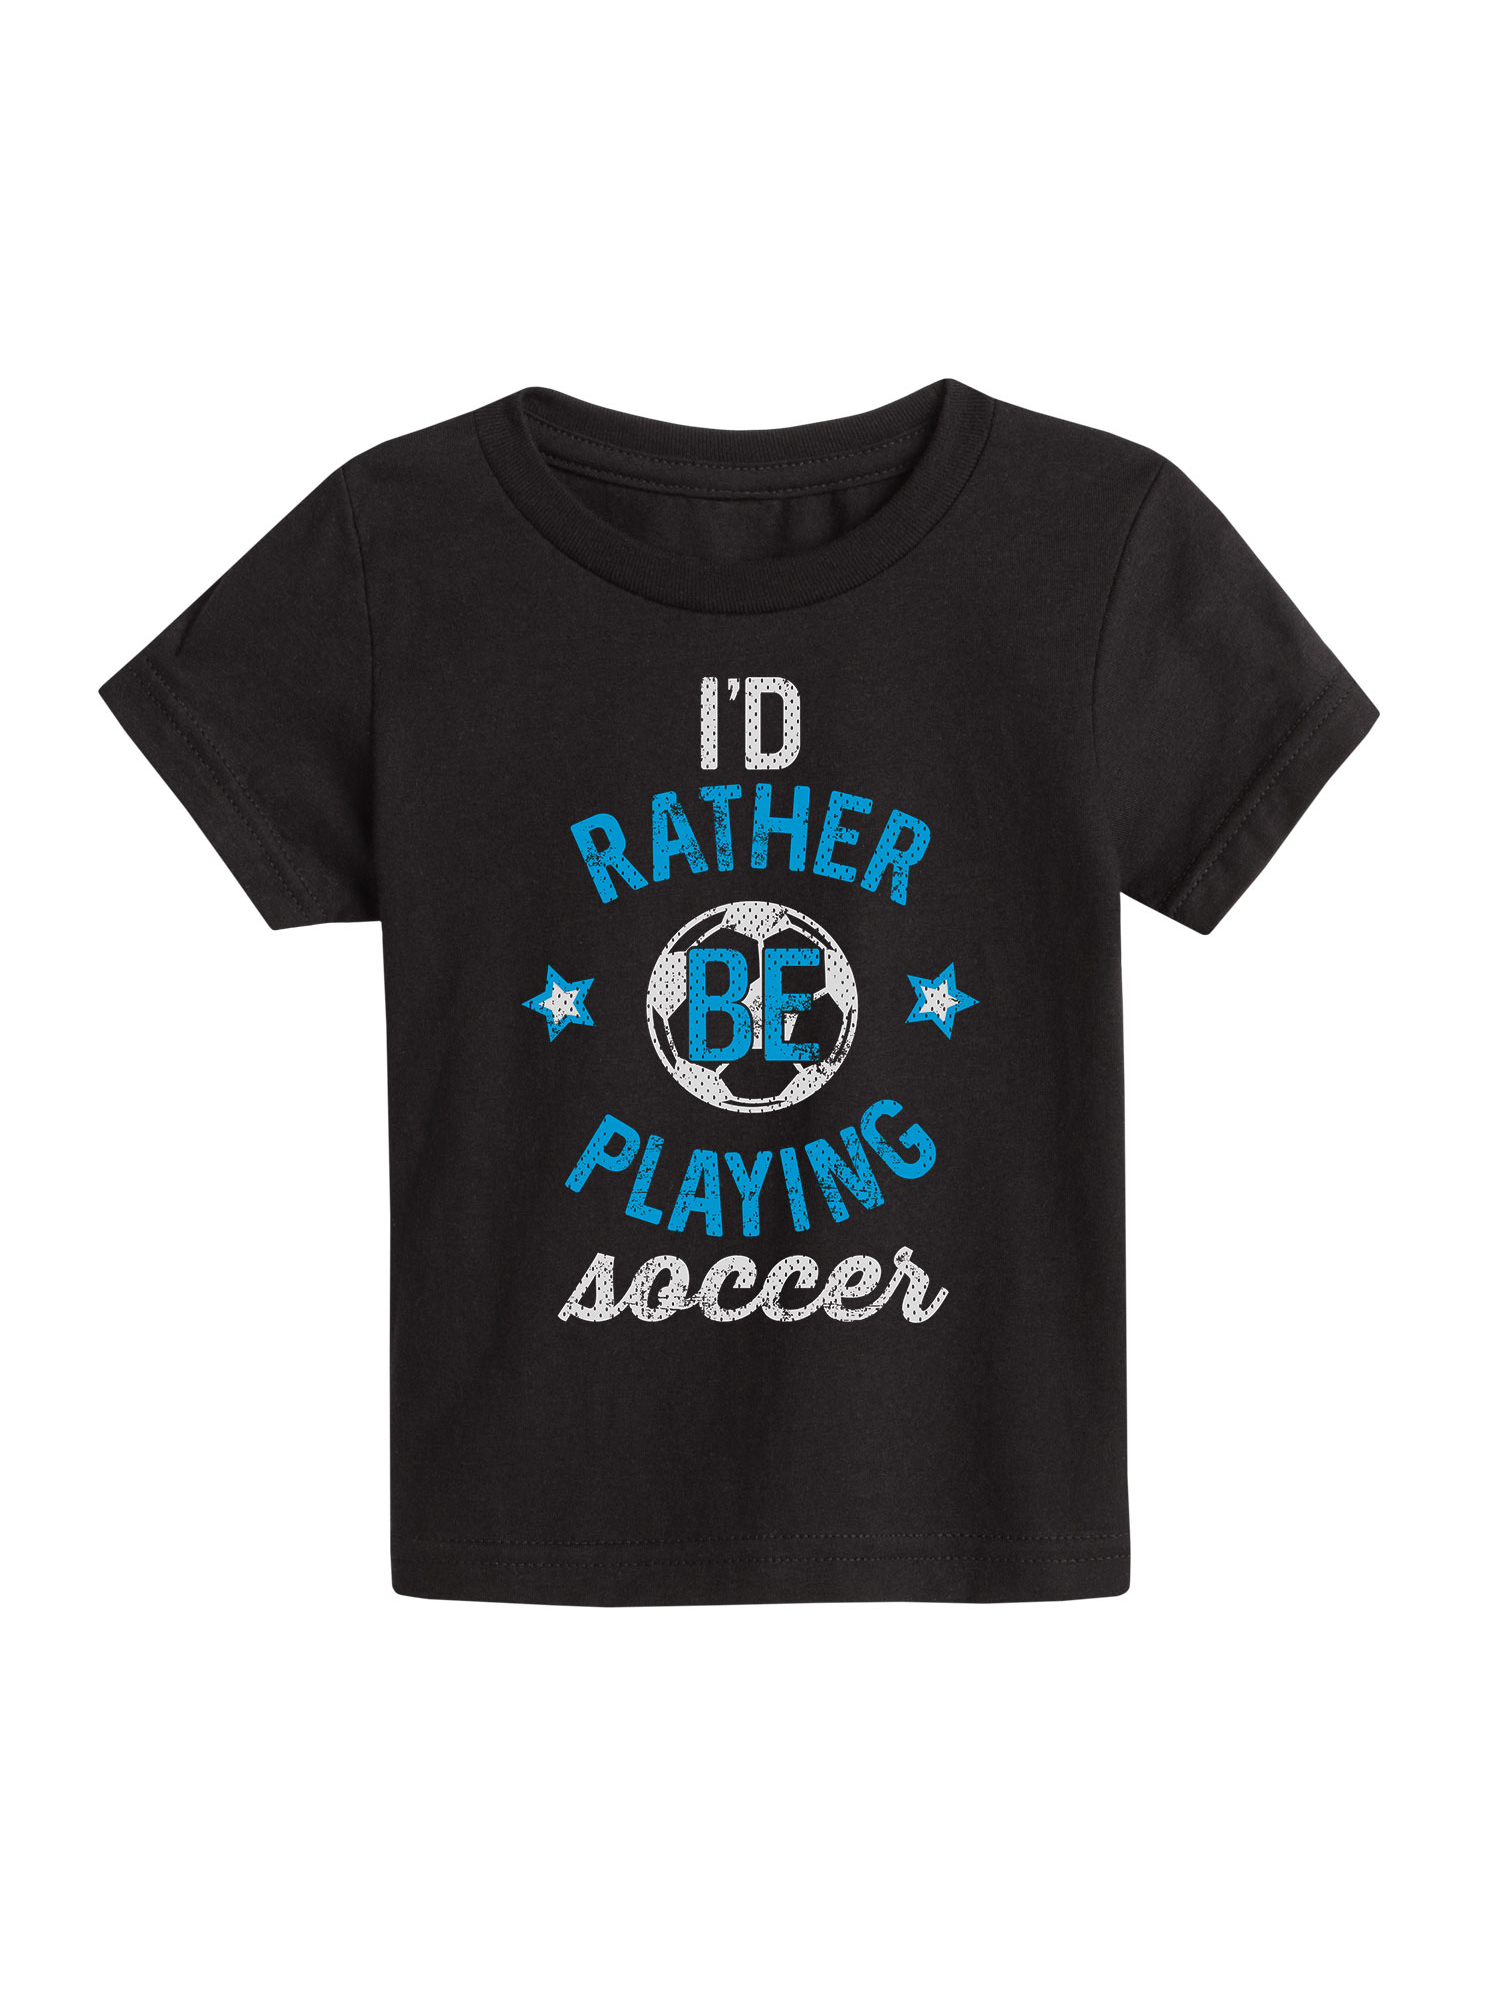 I'd Rather Be Playing Soccer Boy - Toddler Short Sleeve Tee